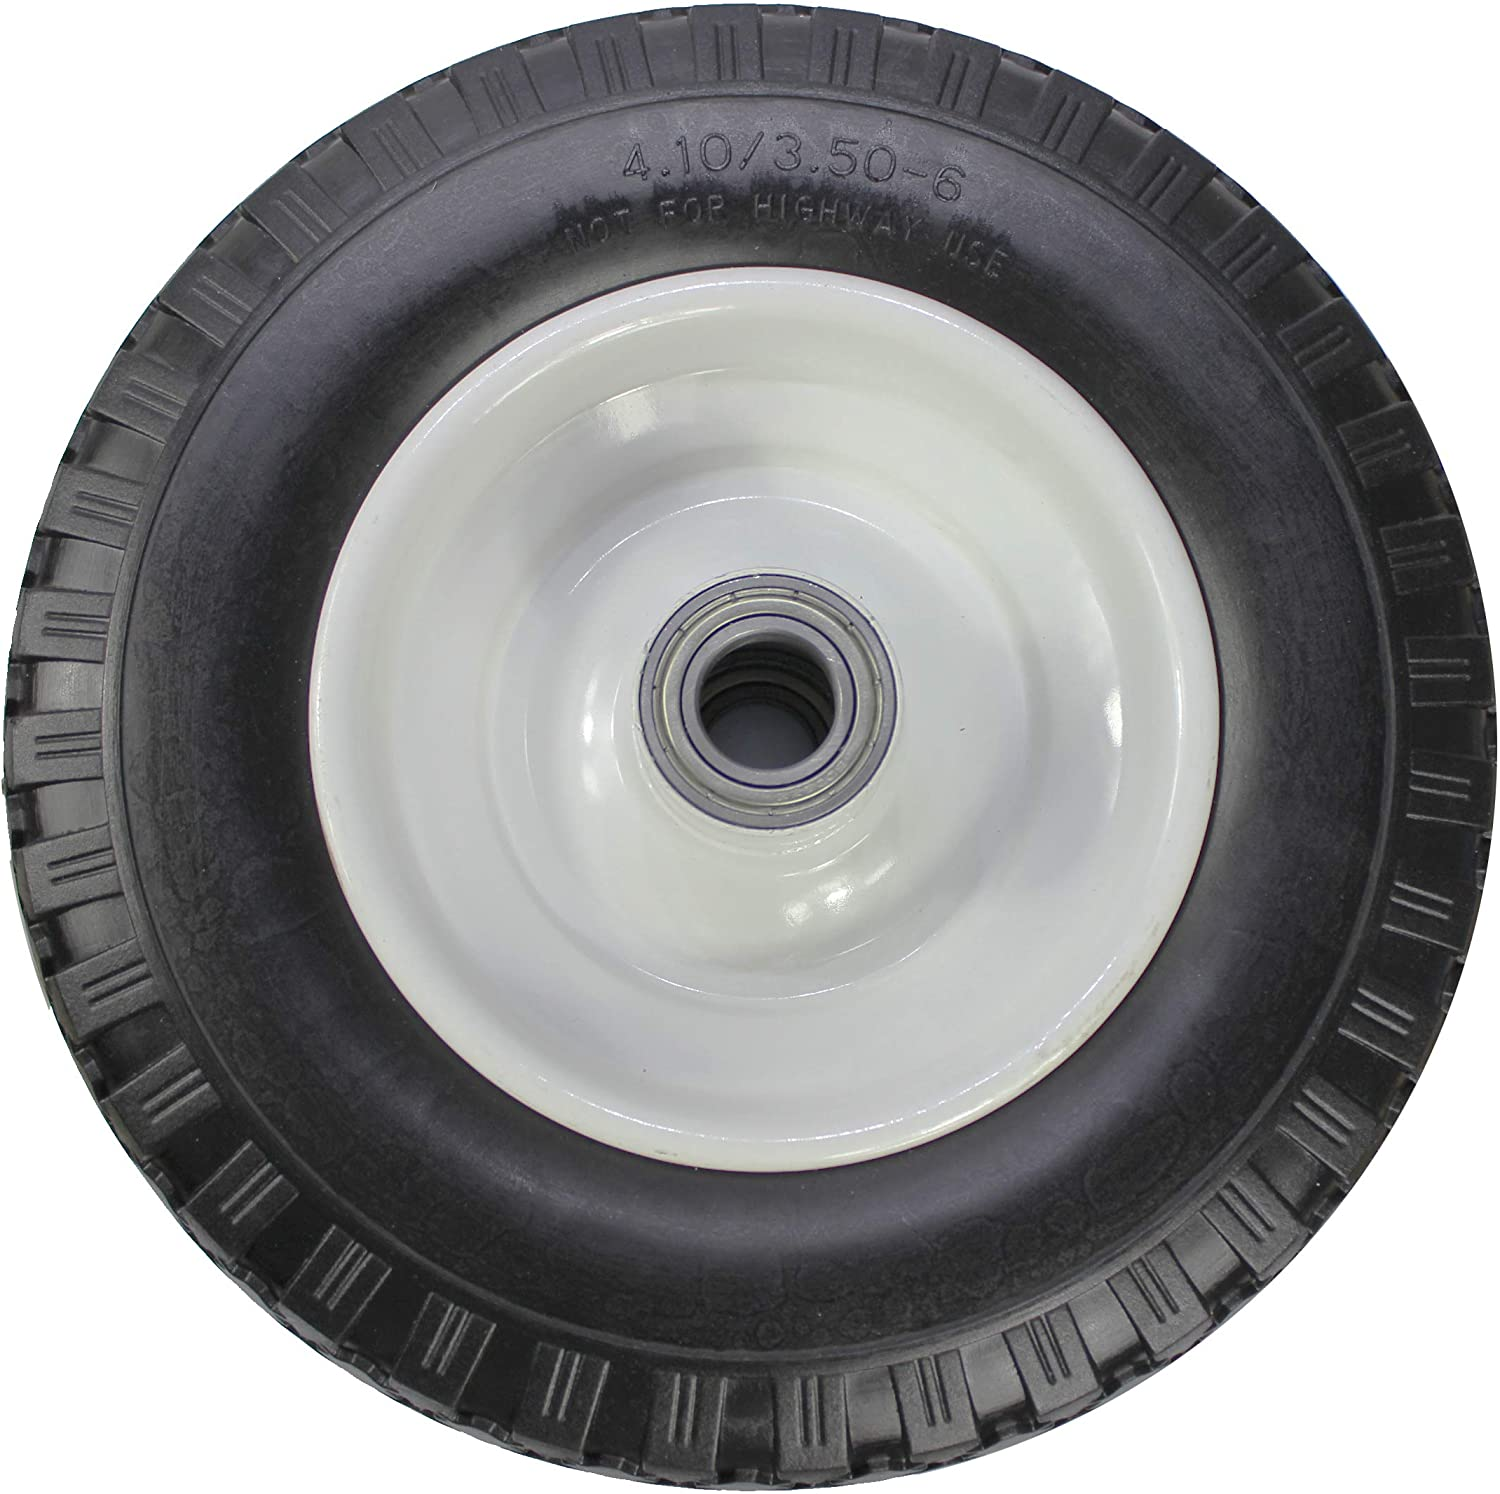 "MaxxHaul 50502 Trailer Dollies, Hand Trucks, Garden Carts 4.10/3.50-6"" Flat Free Solid Polyurethane All-Purpose Replacement Tire, Black"